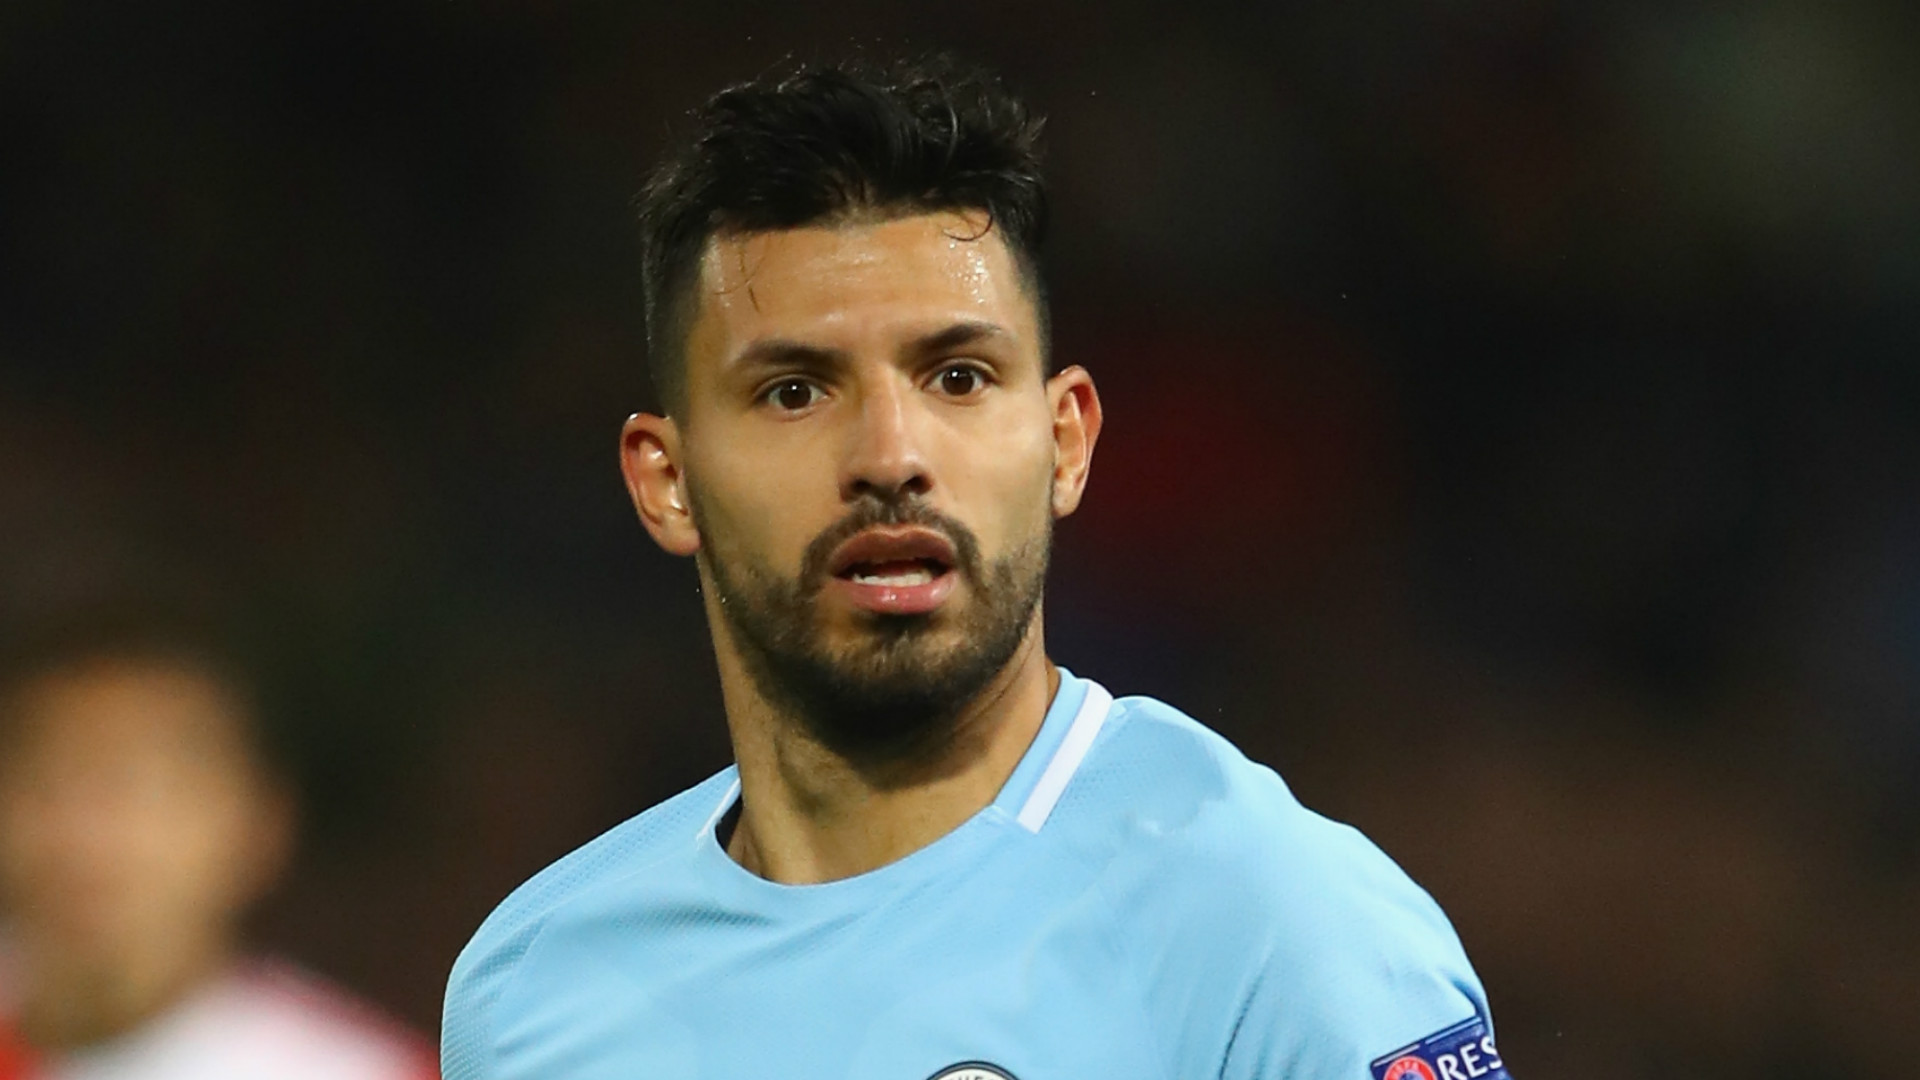 Pep Guardiola fears broken rib for Sergio Aguero after Amsterdam accident